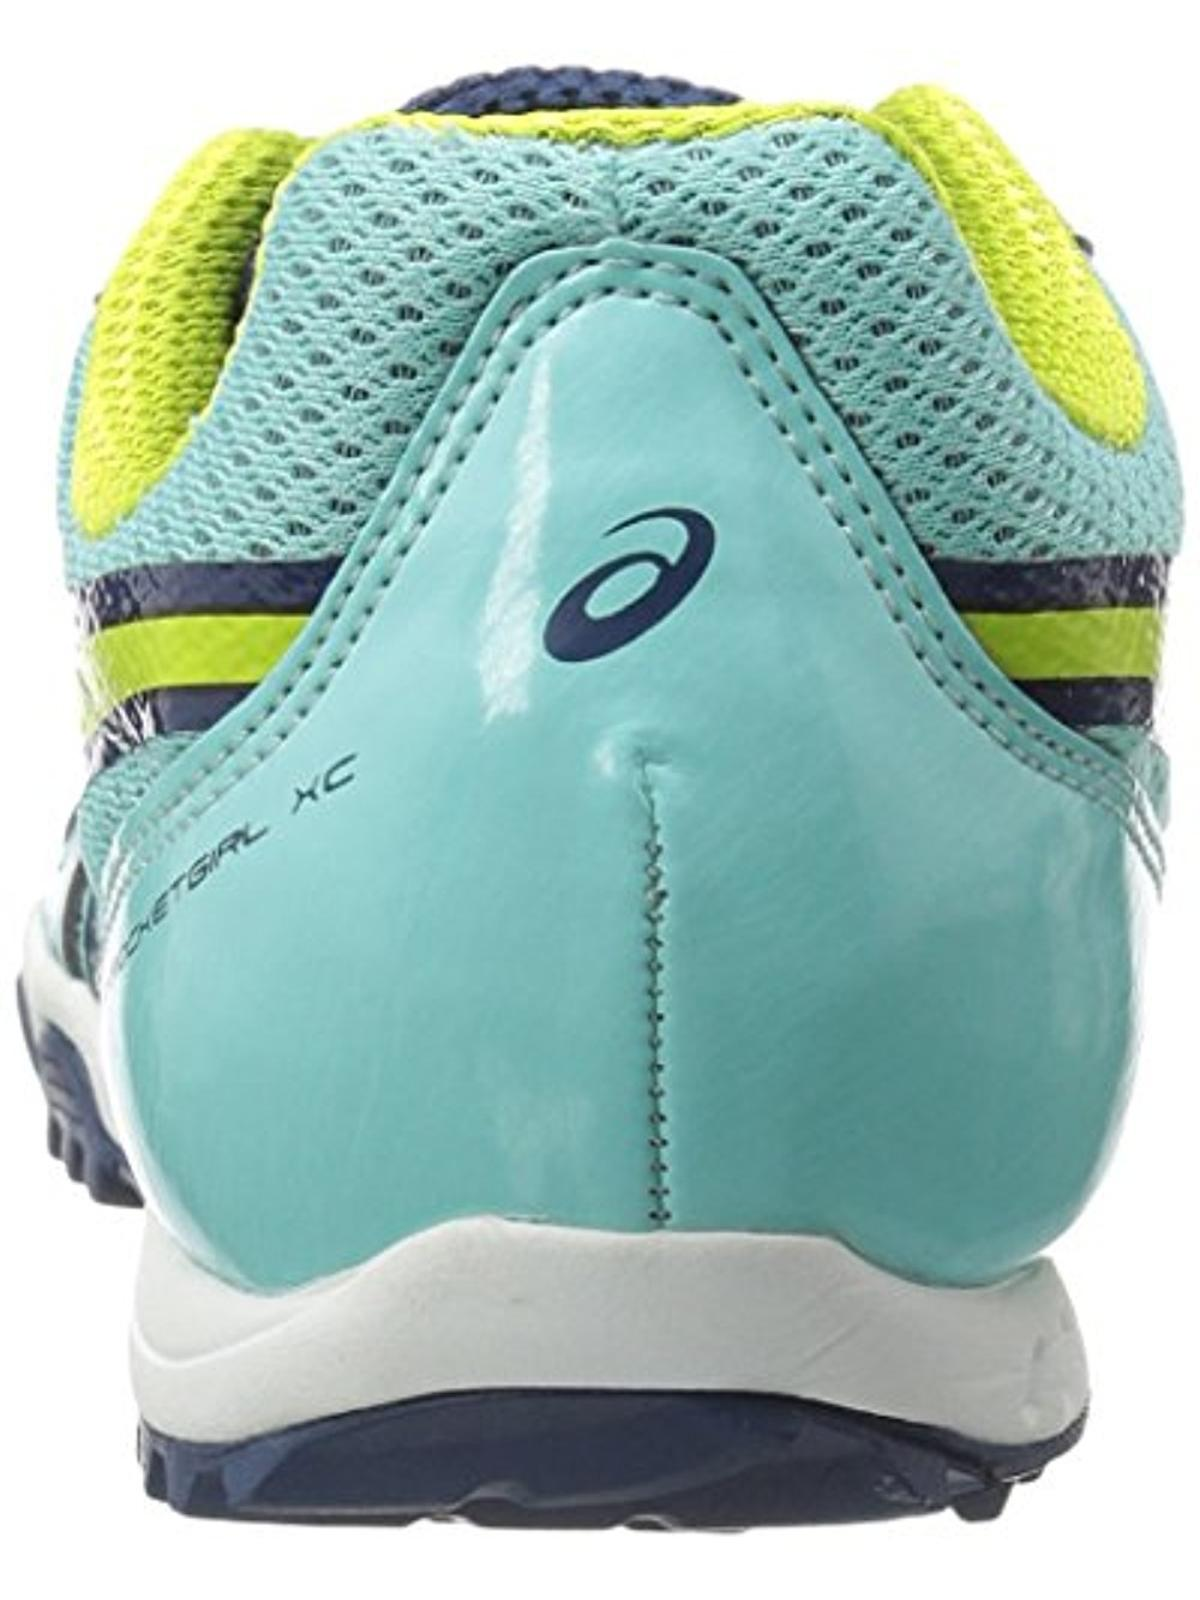 ASICS Womens G559Y.7889 Blue Running, Cross Training Shoes Size 7.5 New